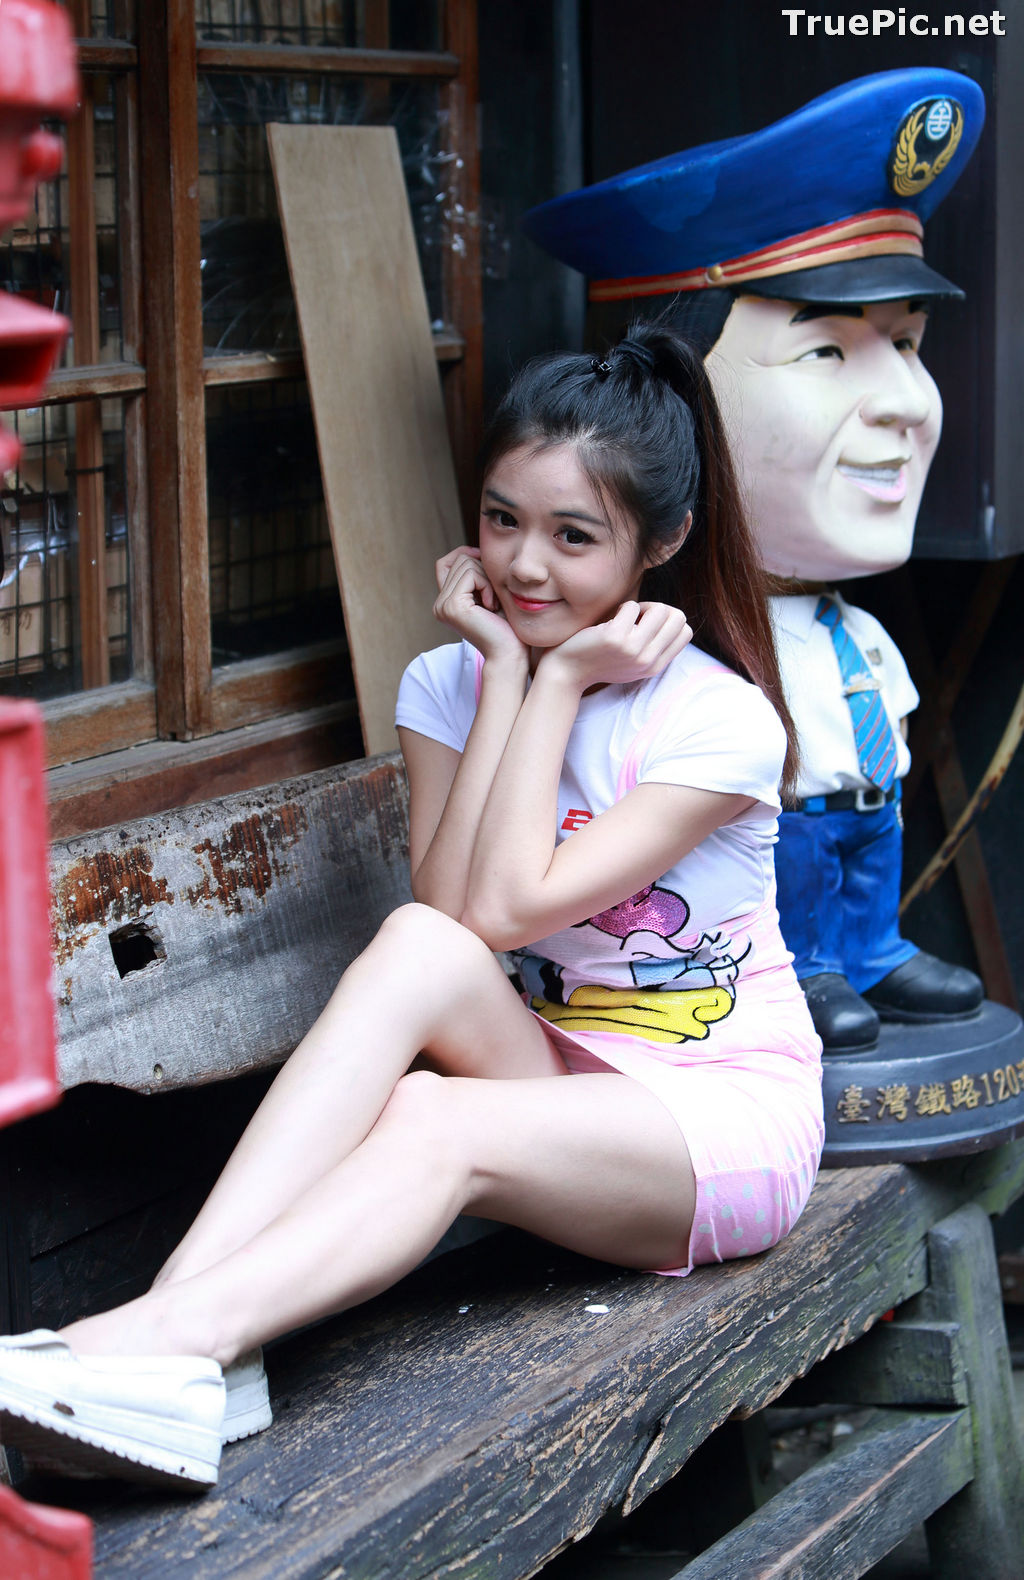 Image Taiwanese Model - 黃旺旺 - Lovely and Naughty Girl - TruePic.net - Picture-7